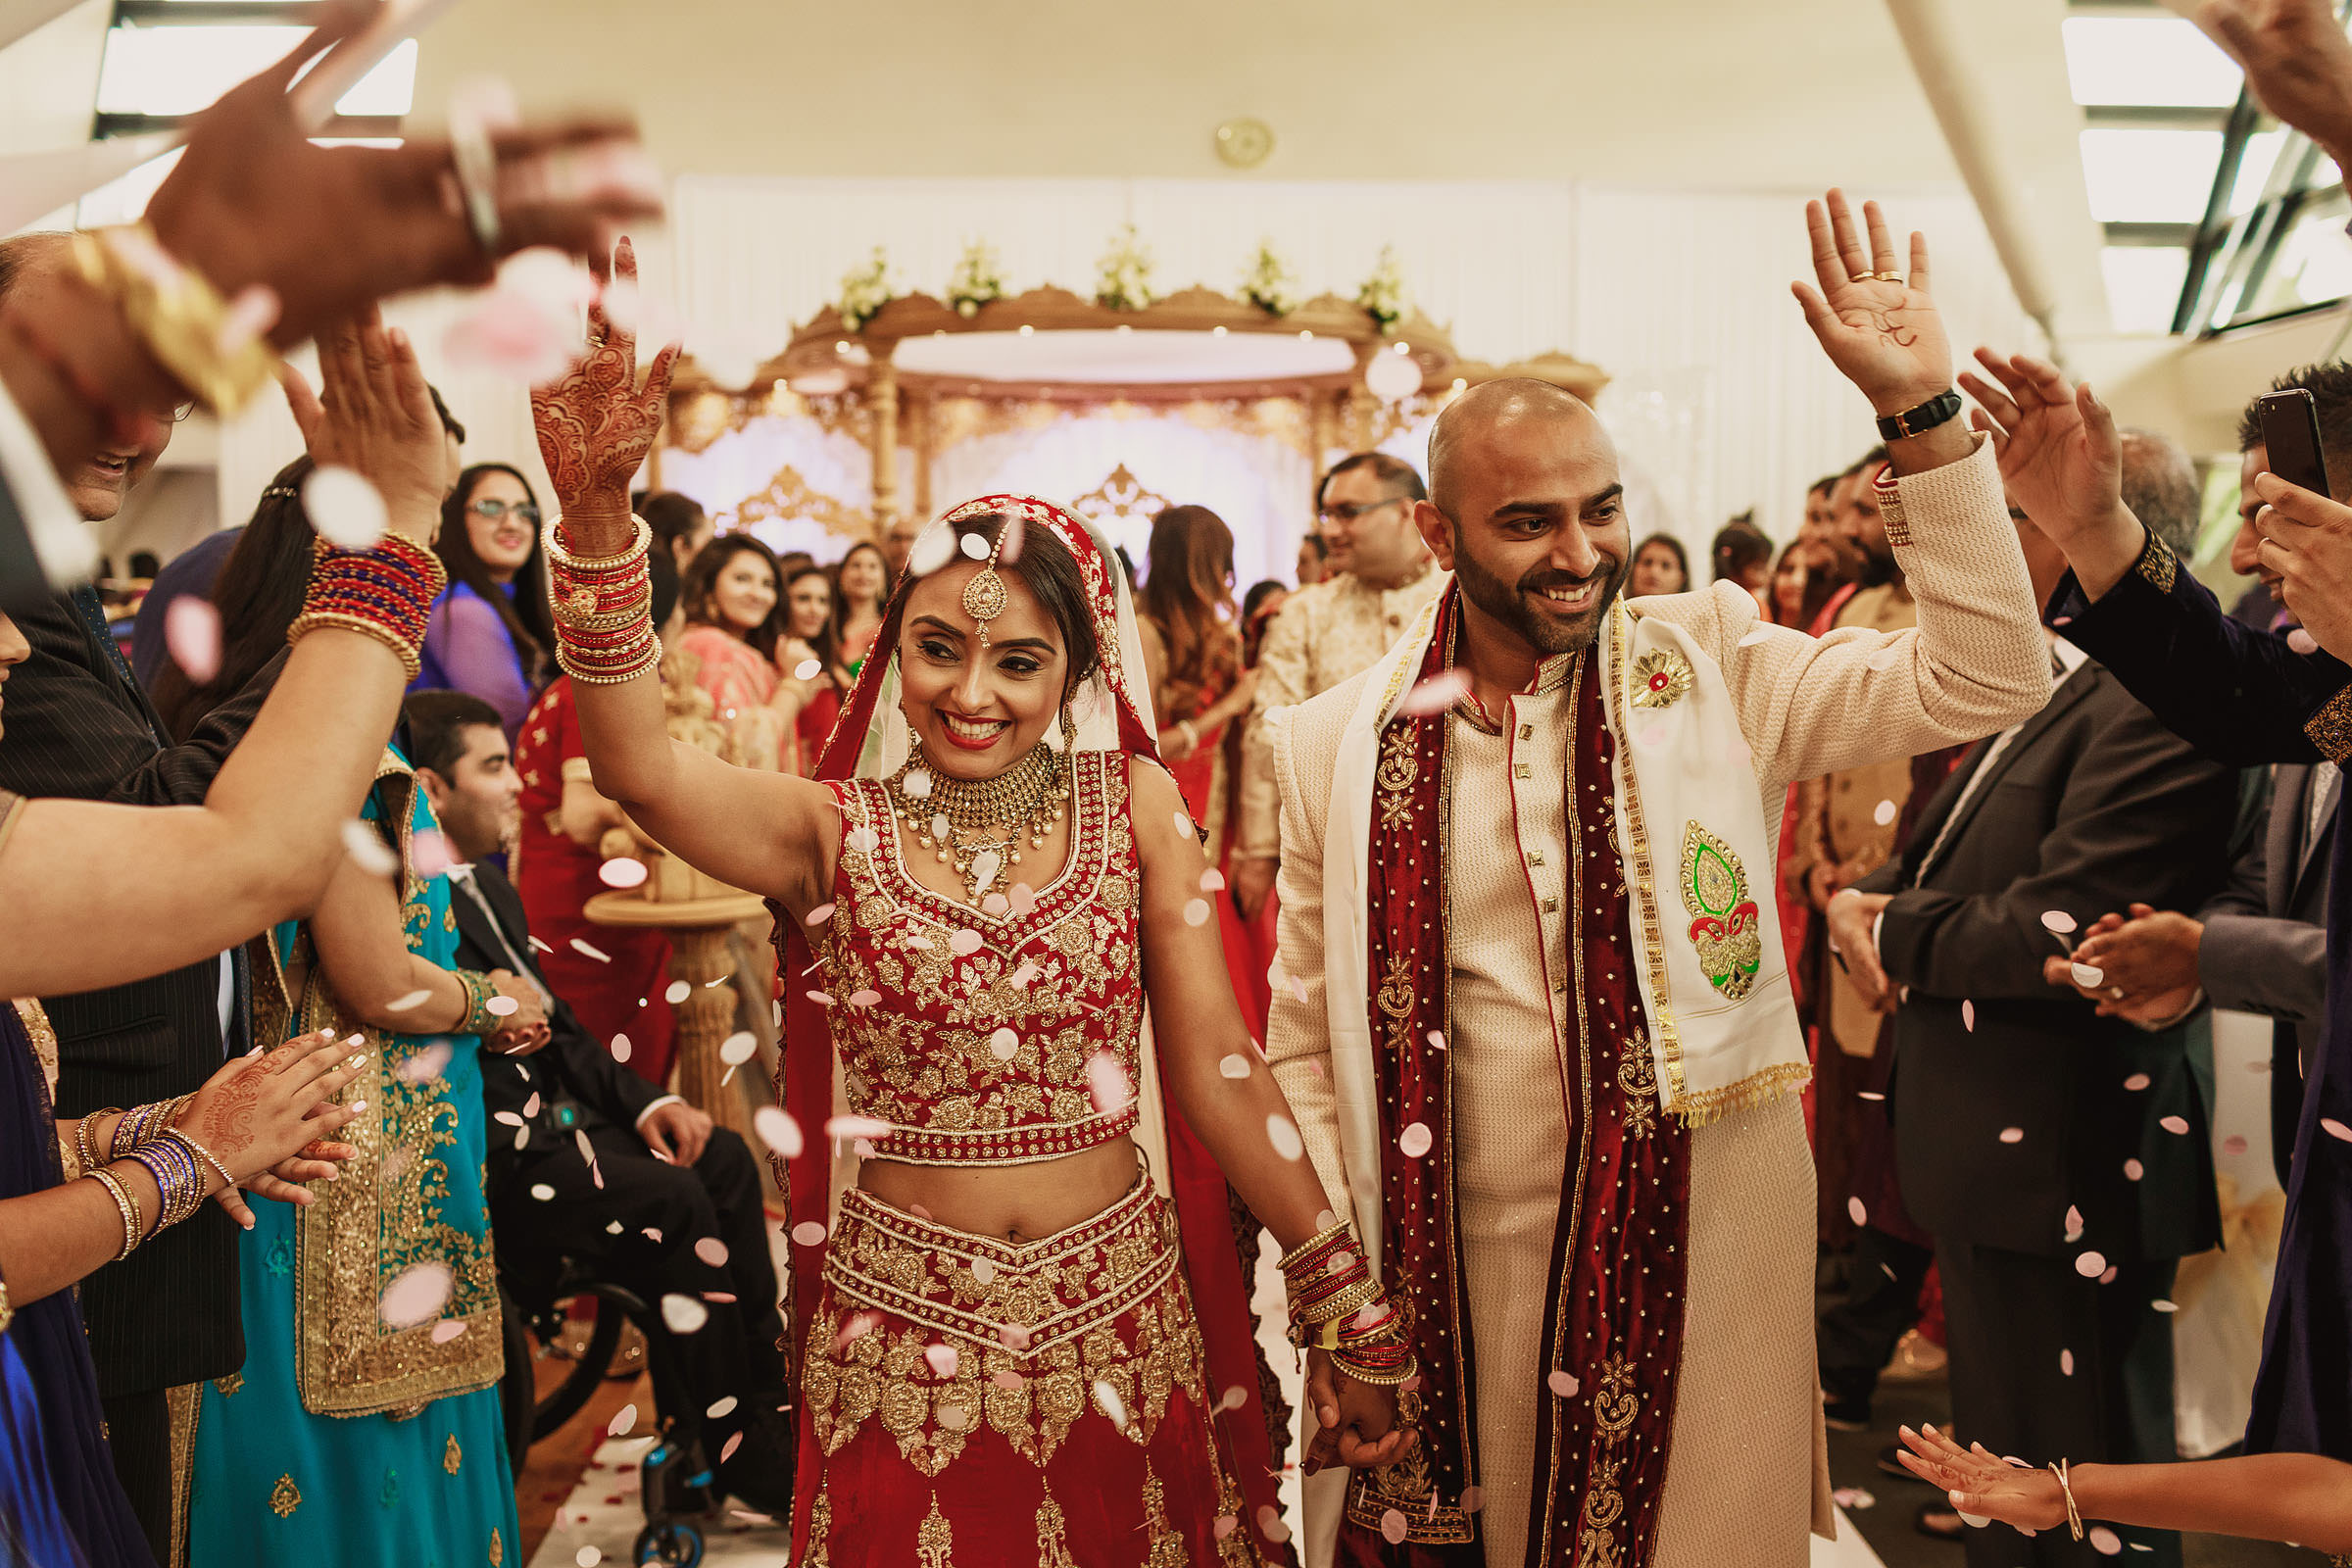 Couple exits among rose petals - Photo by F5 Photography